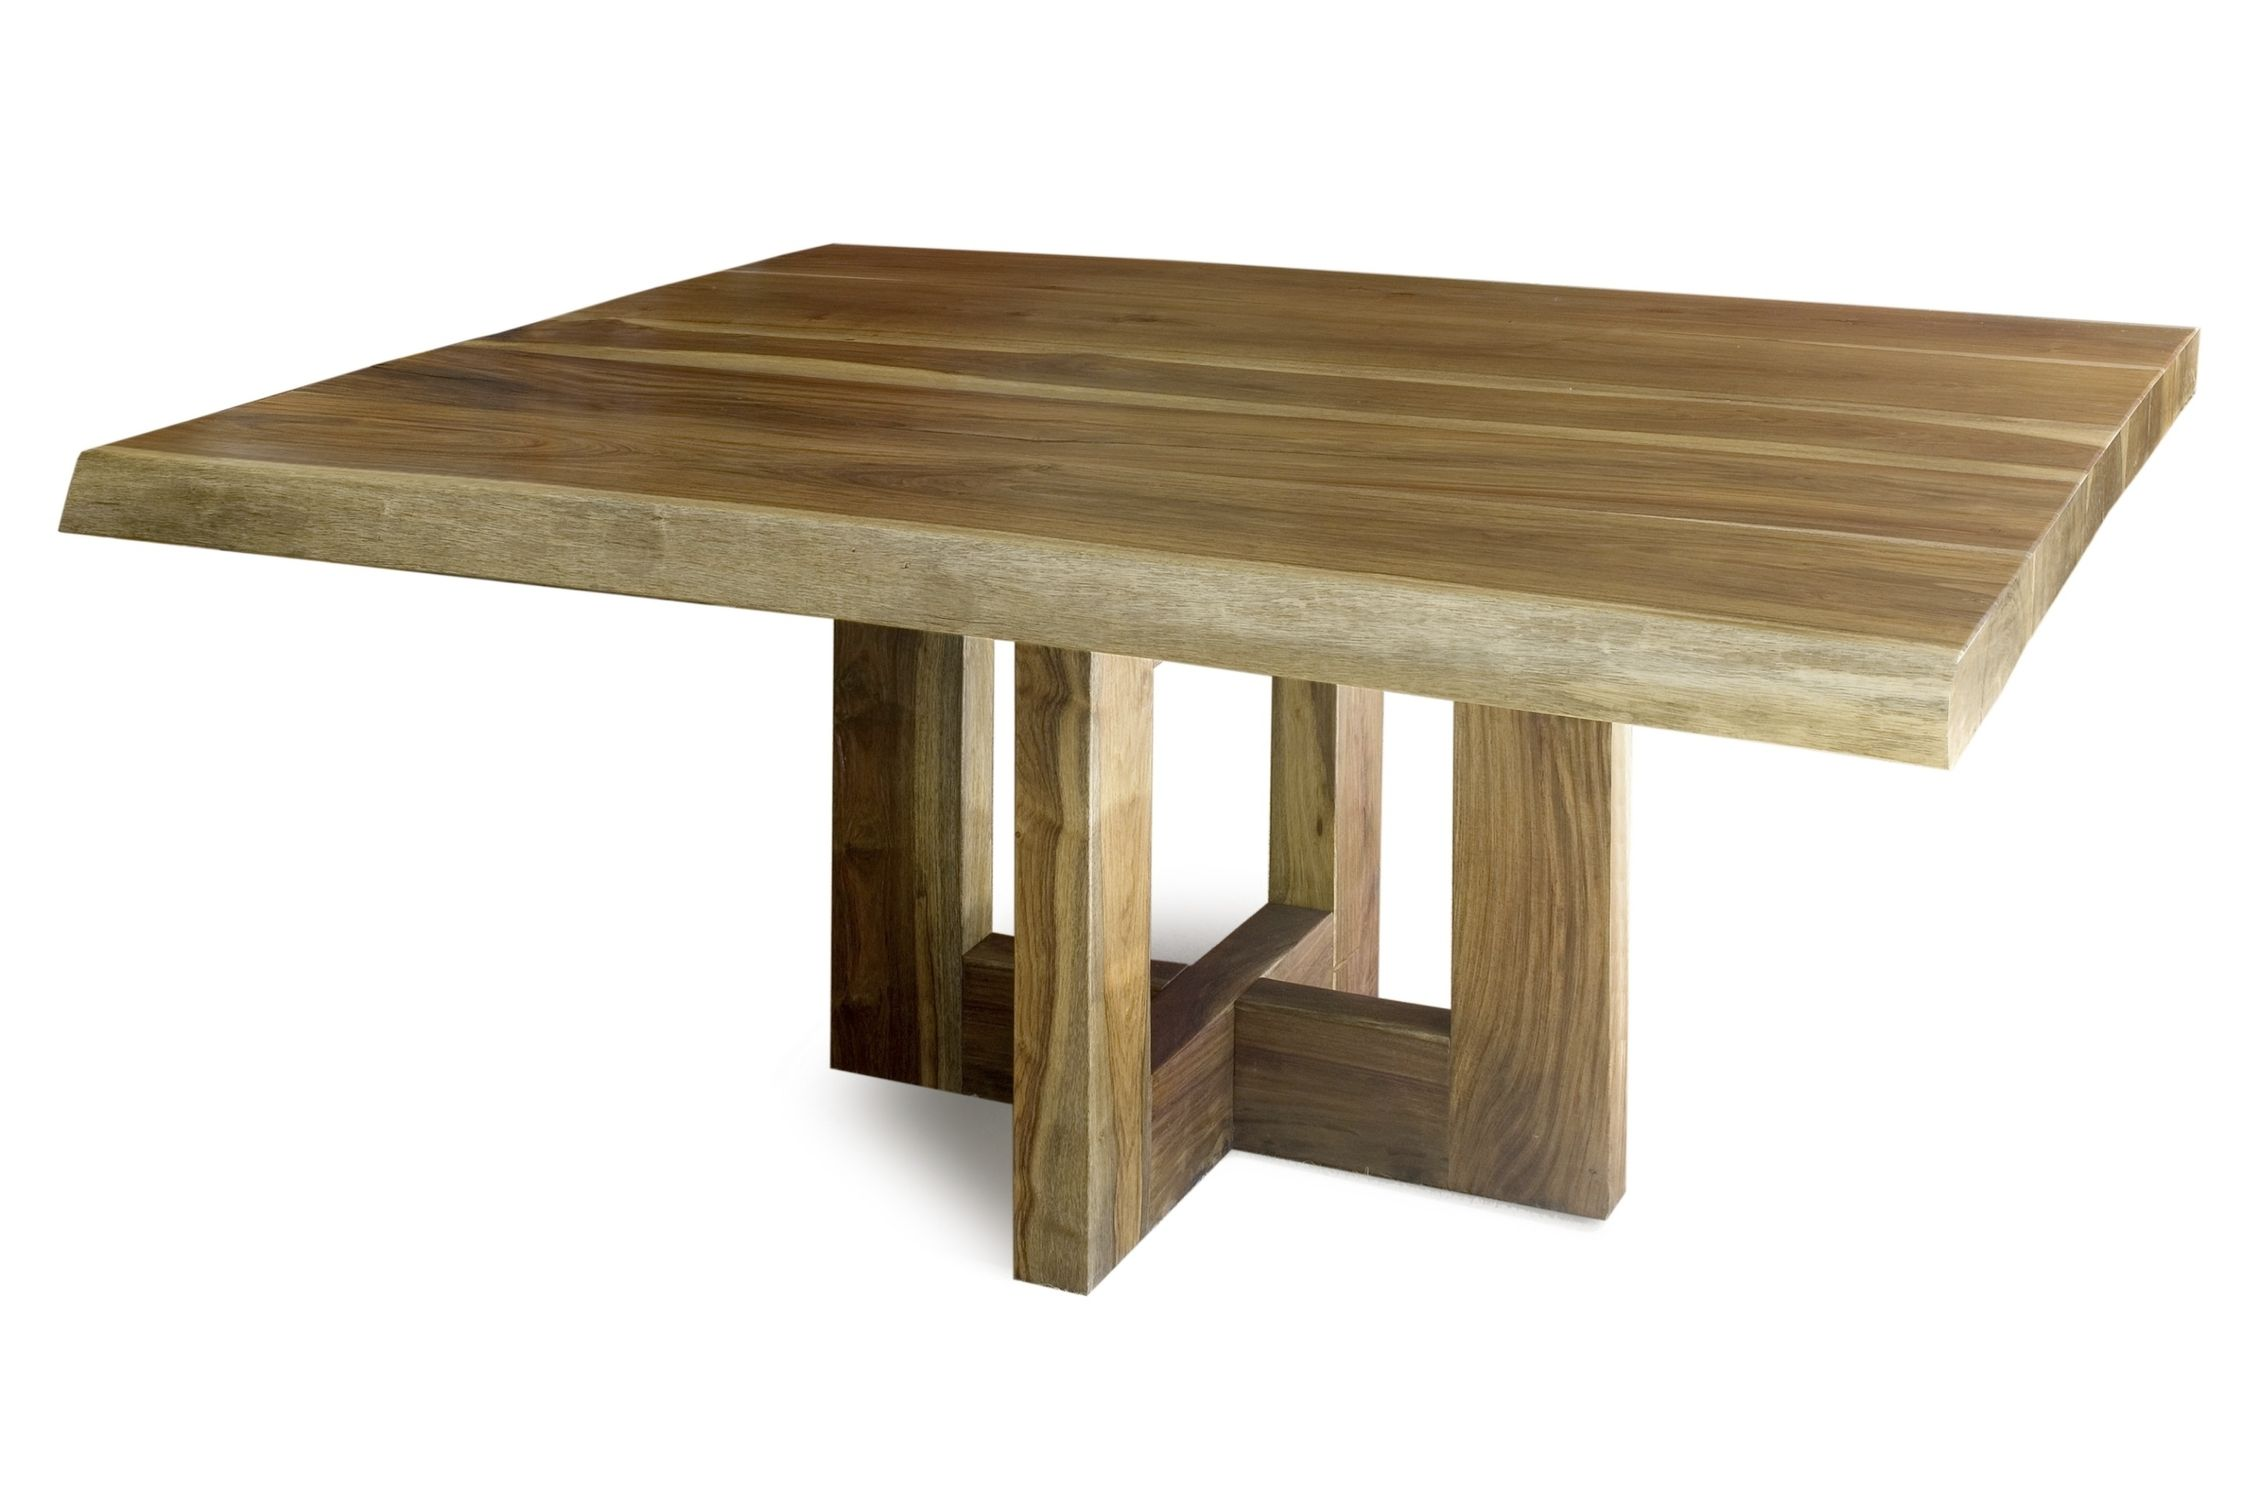 Contemporary Table / Wooden / Rectangular / In Reclaimed Material    JACARANDA